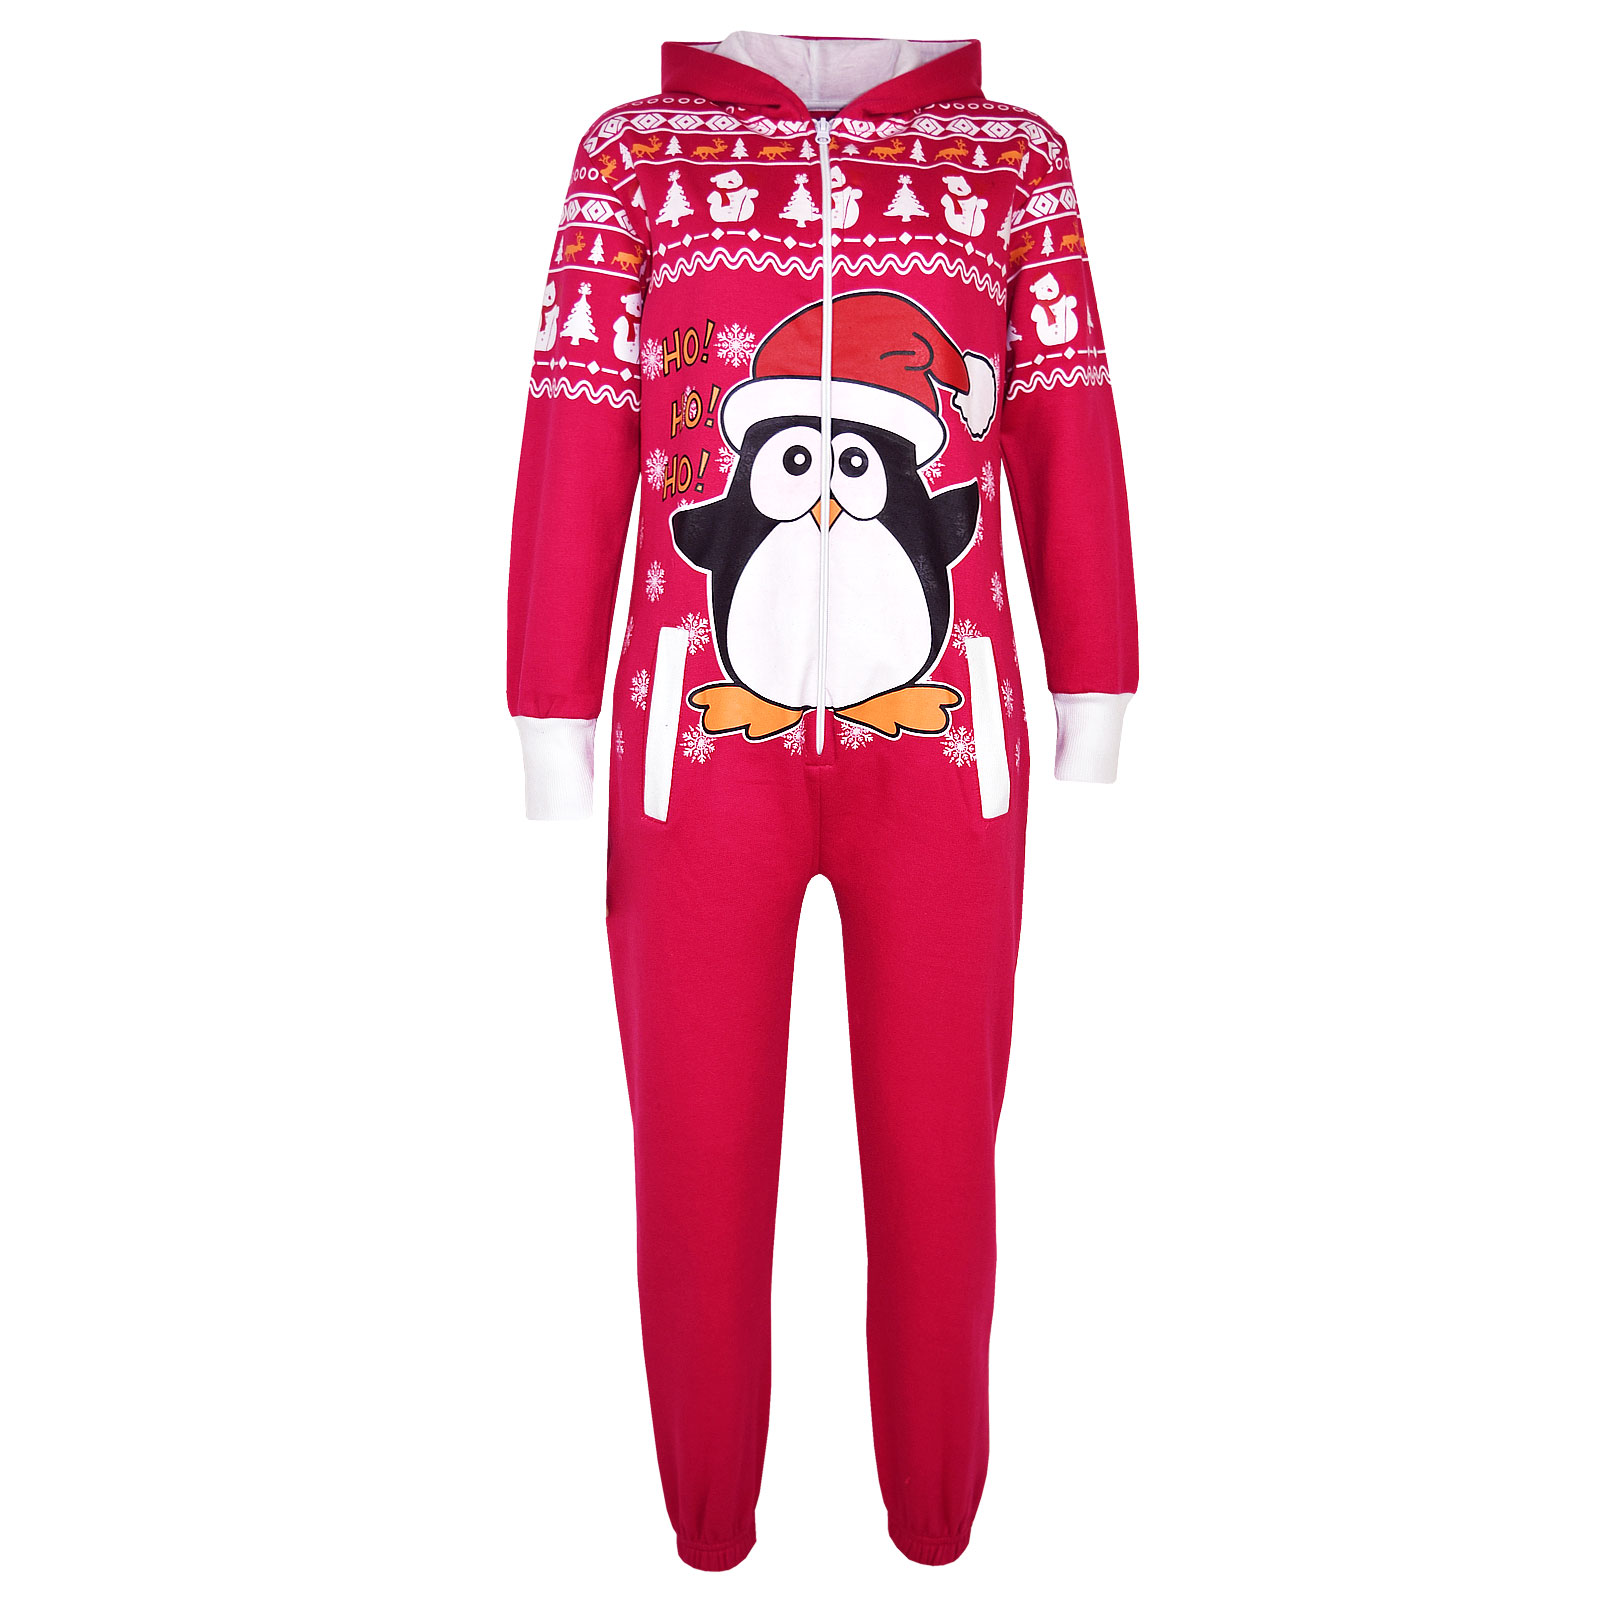 Kids Loungeable Christmas Onesies Or Robes. by Loungeable Boutique. $ - $ $ 22 $ 38 Product Features Assorted Onesie Collection Christmas Themed Prints. Kids Unisex Dragon Onesie Pajamas Animal Costume Sleepwear with Monster Slipper Age Years. by Party Chili.